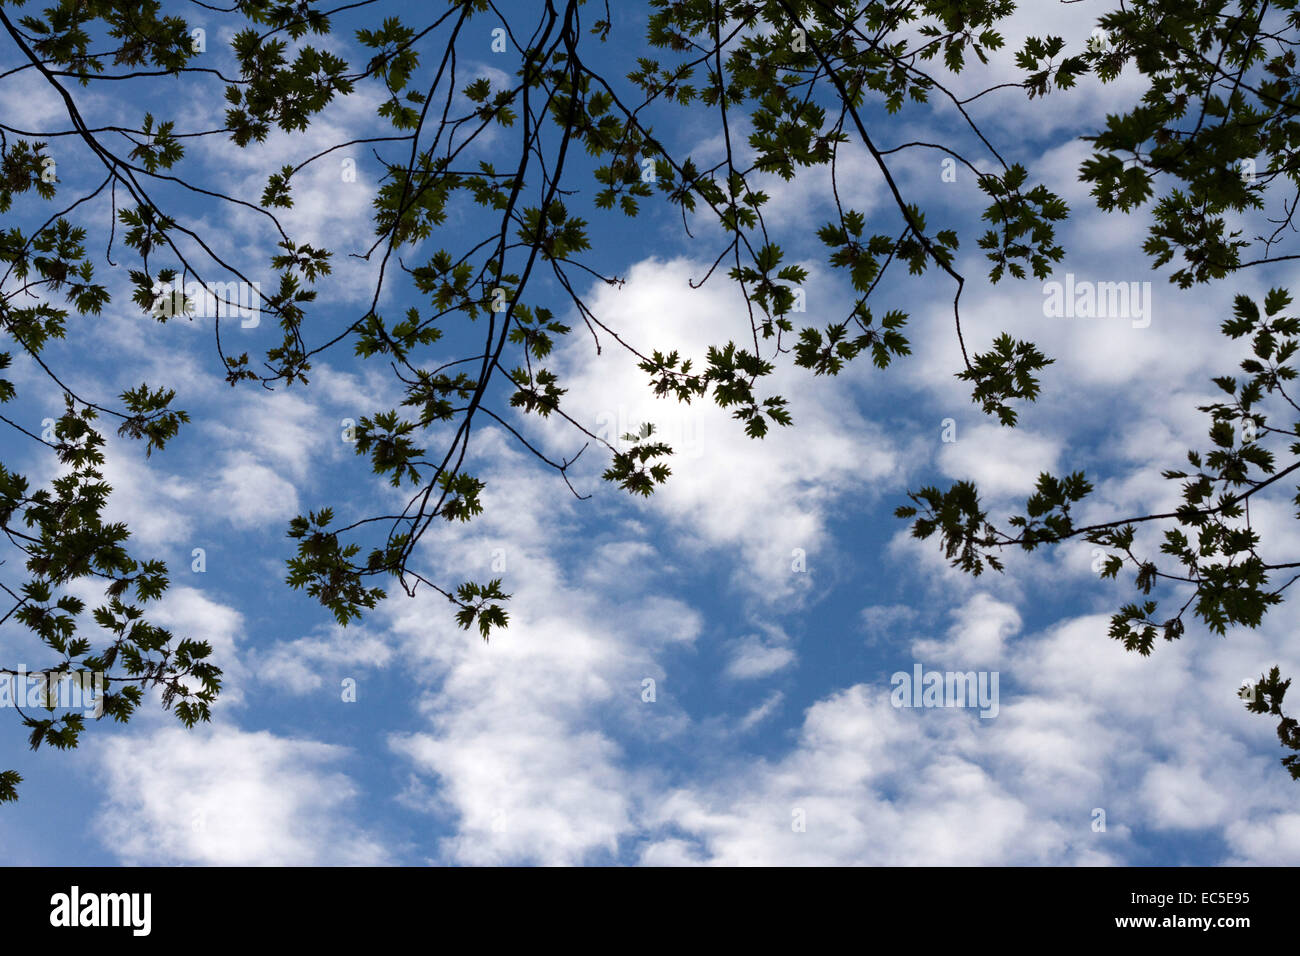 branches in front of a cloudy sky Stock Photo